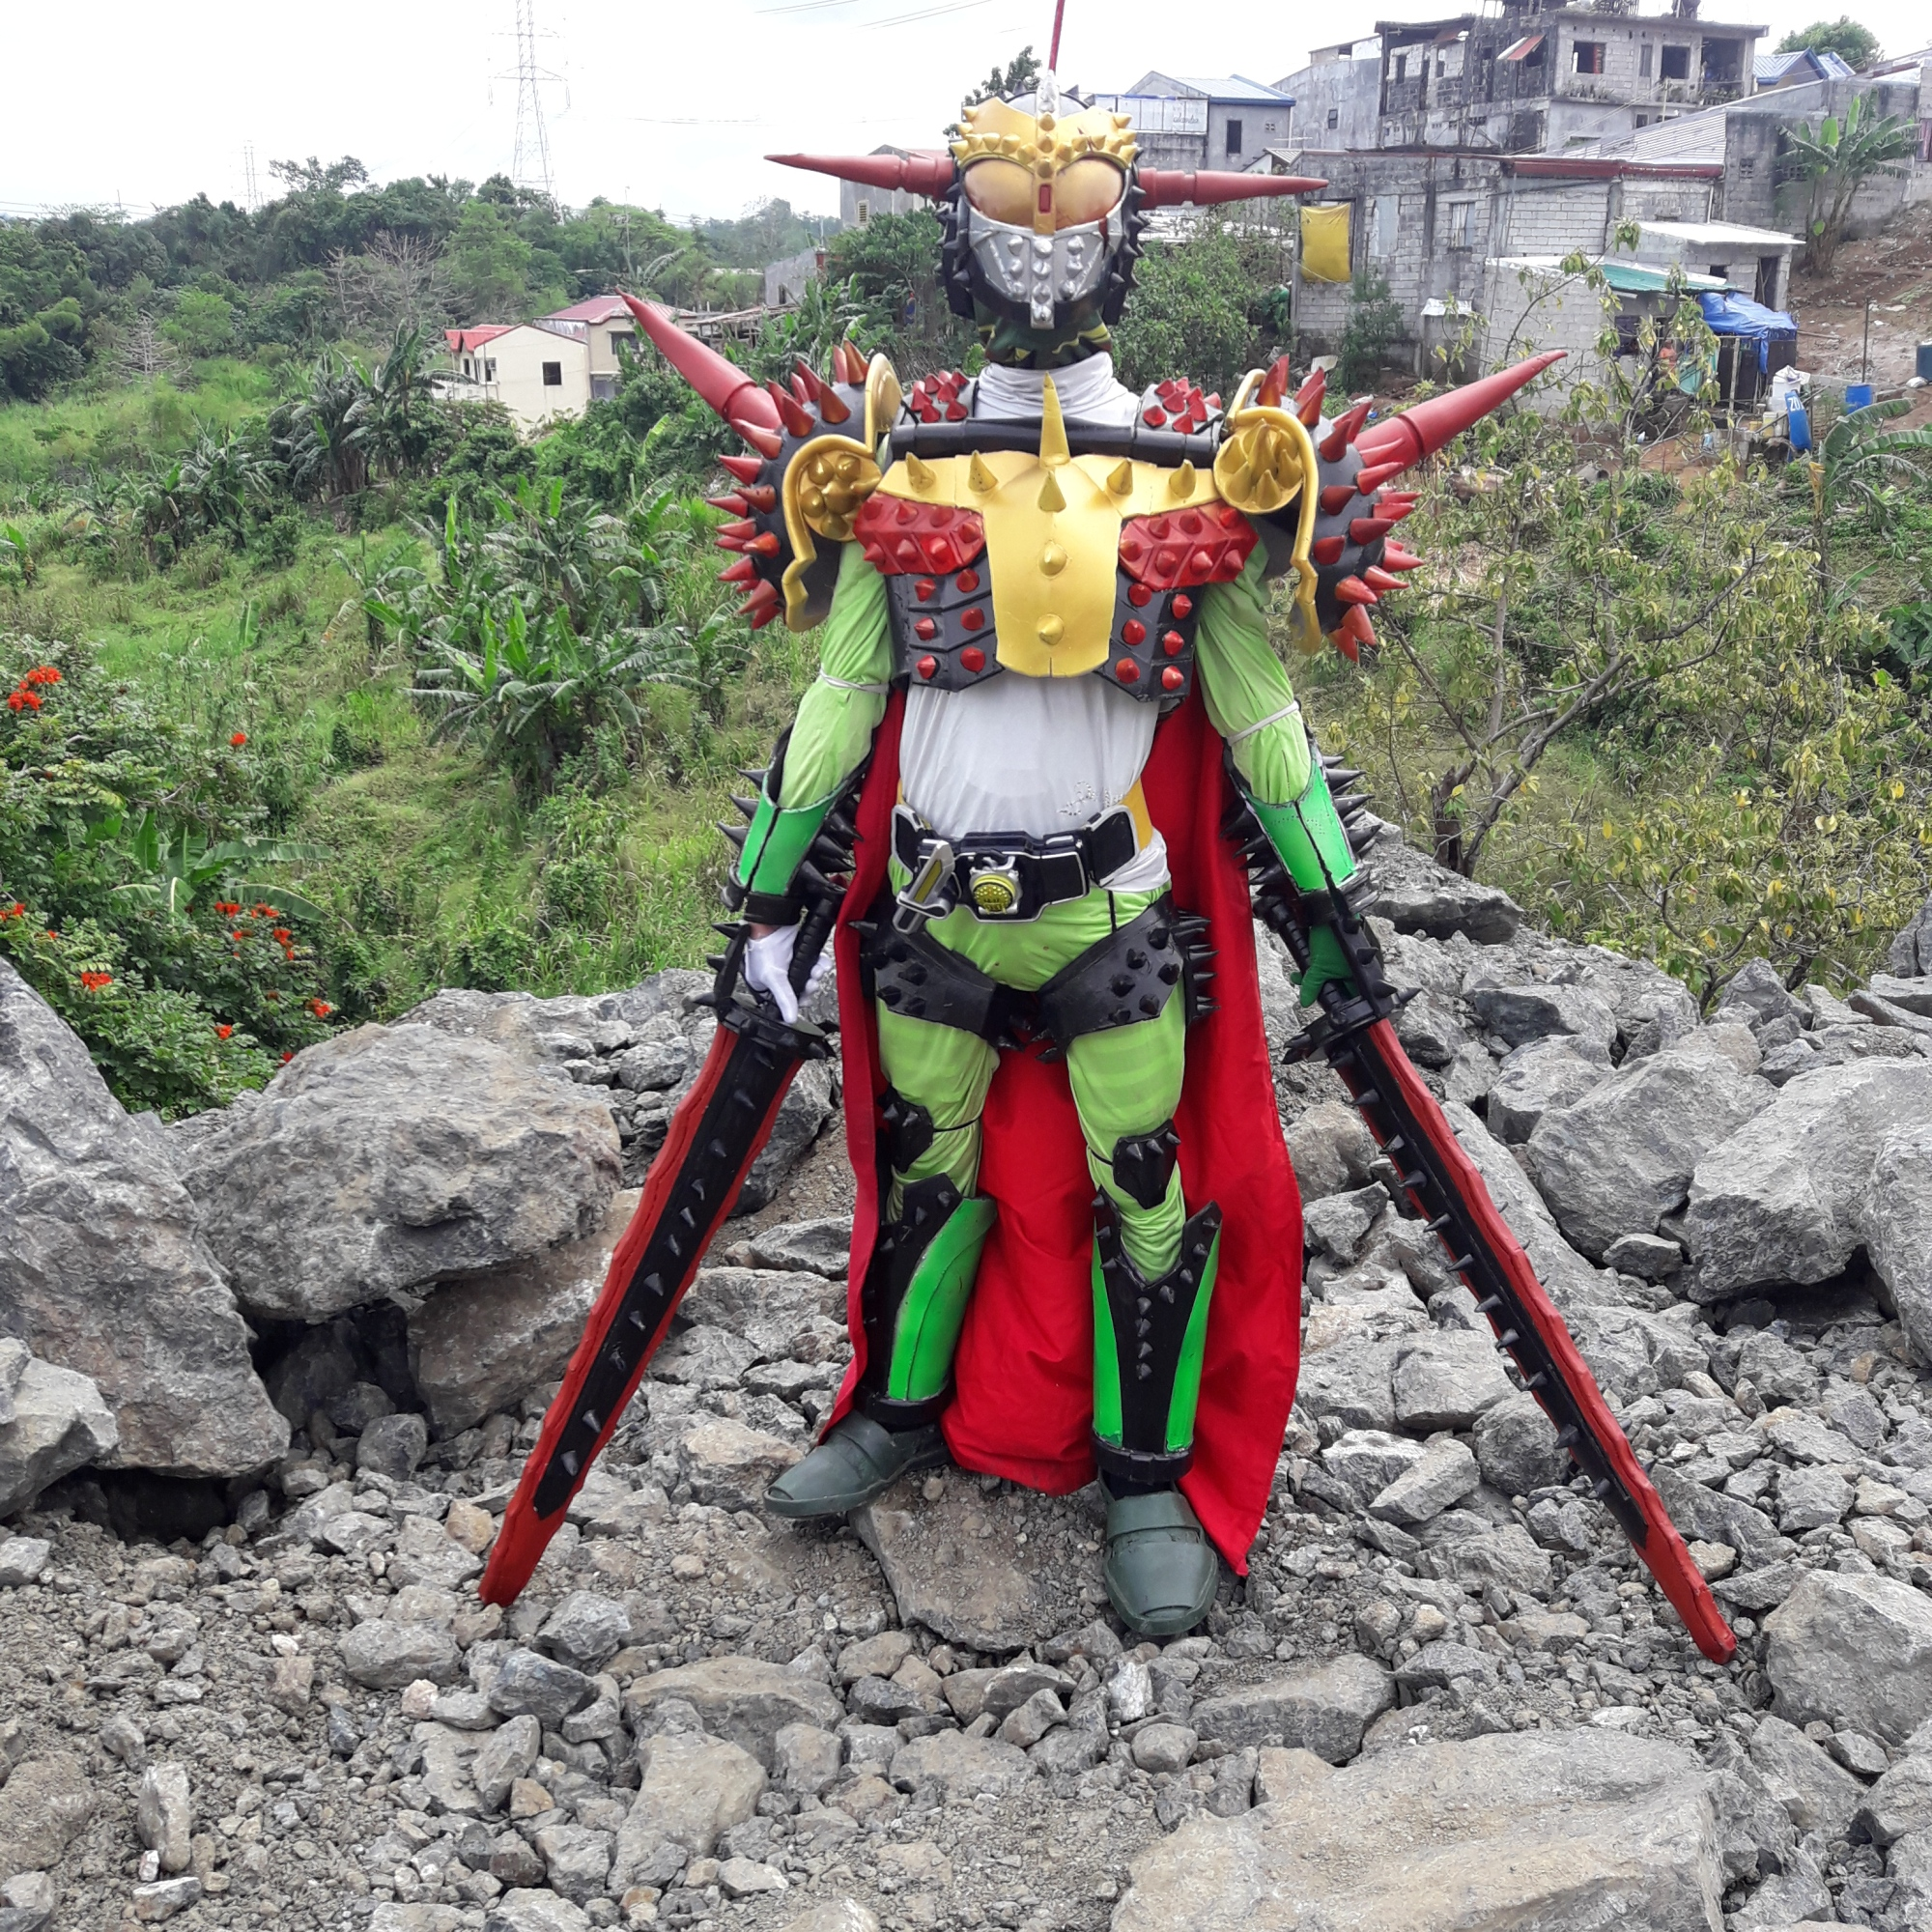 Cosplayer dressed in brightly colored bug-like costume with lots of spikes